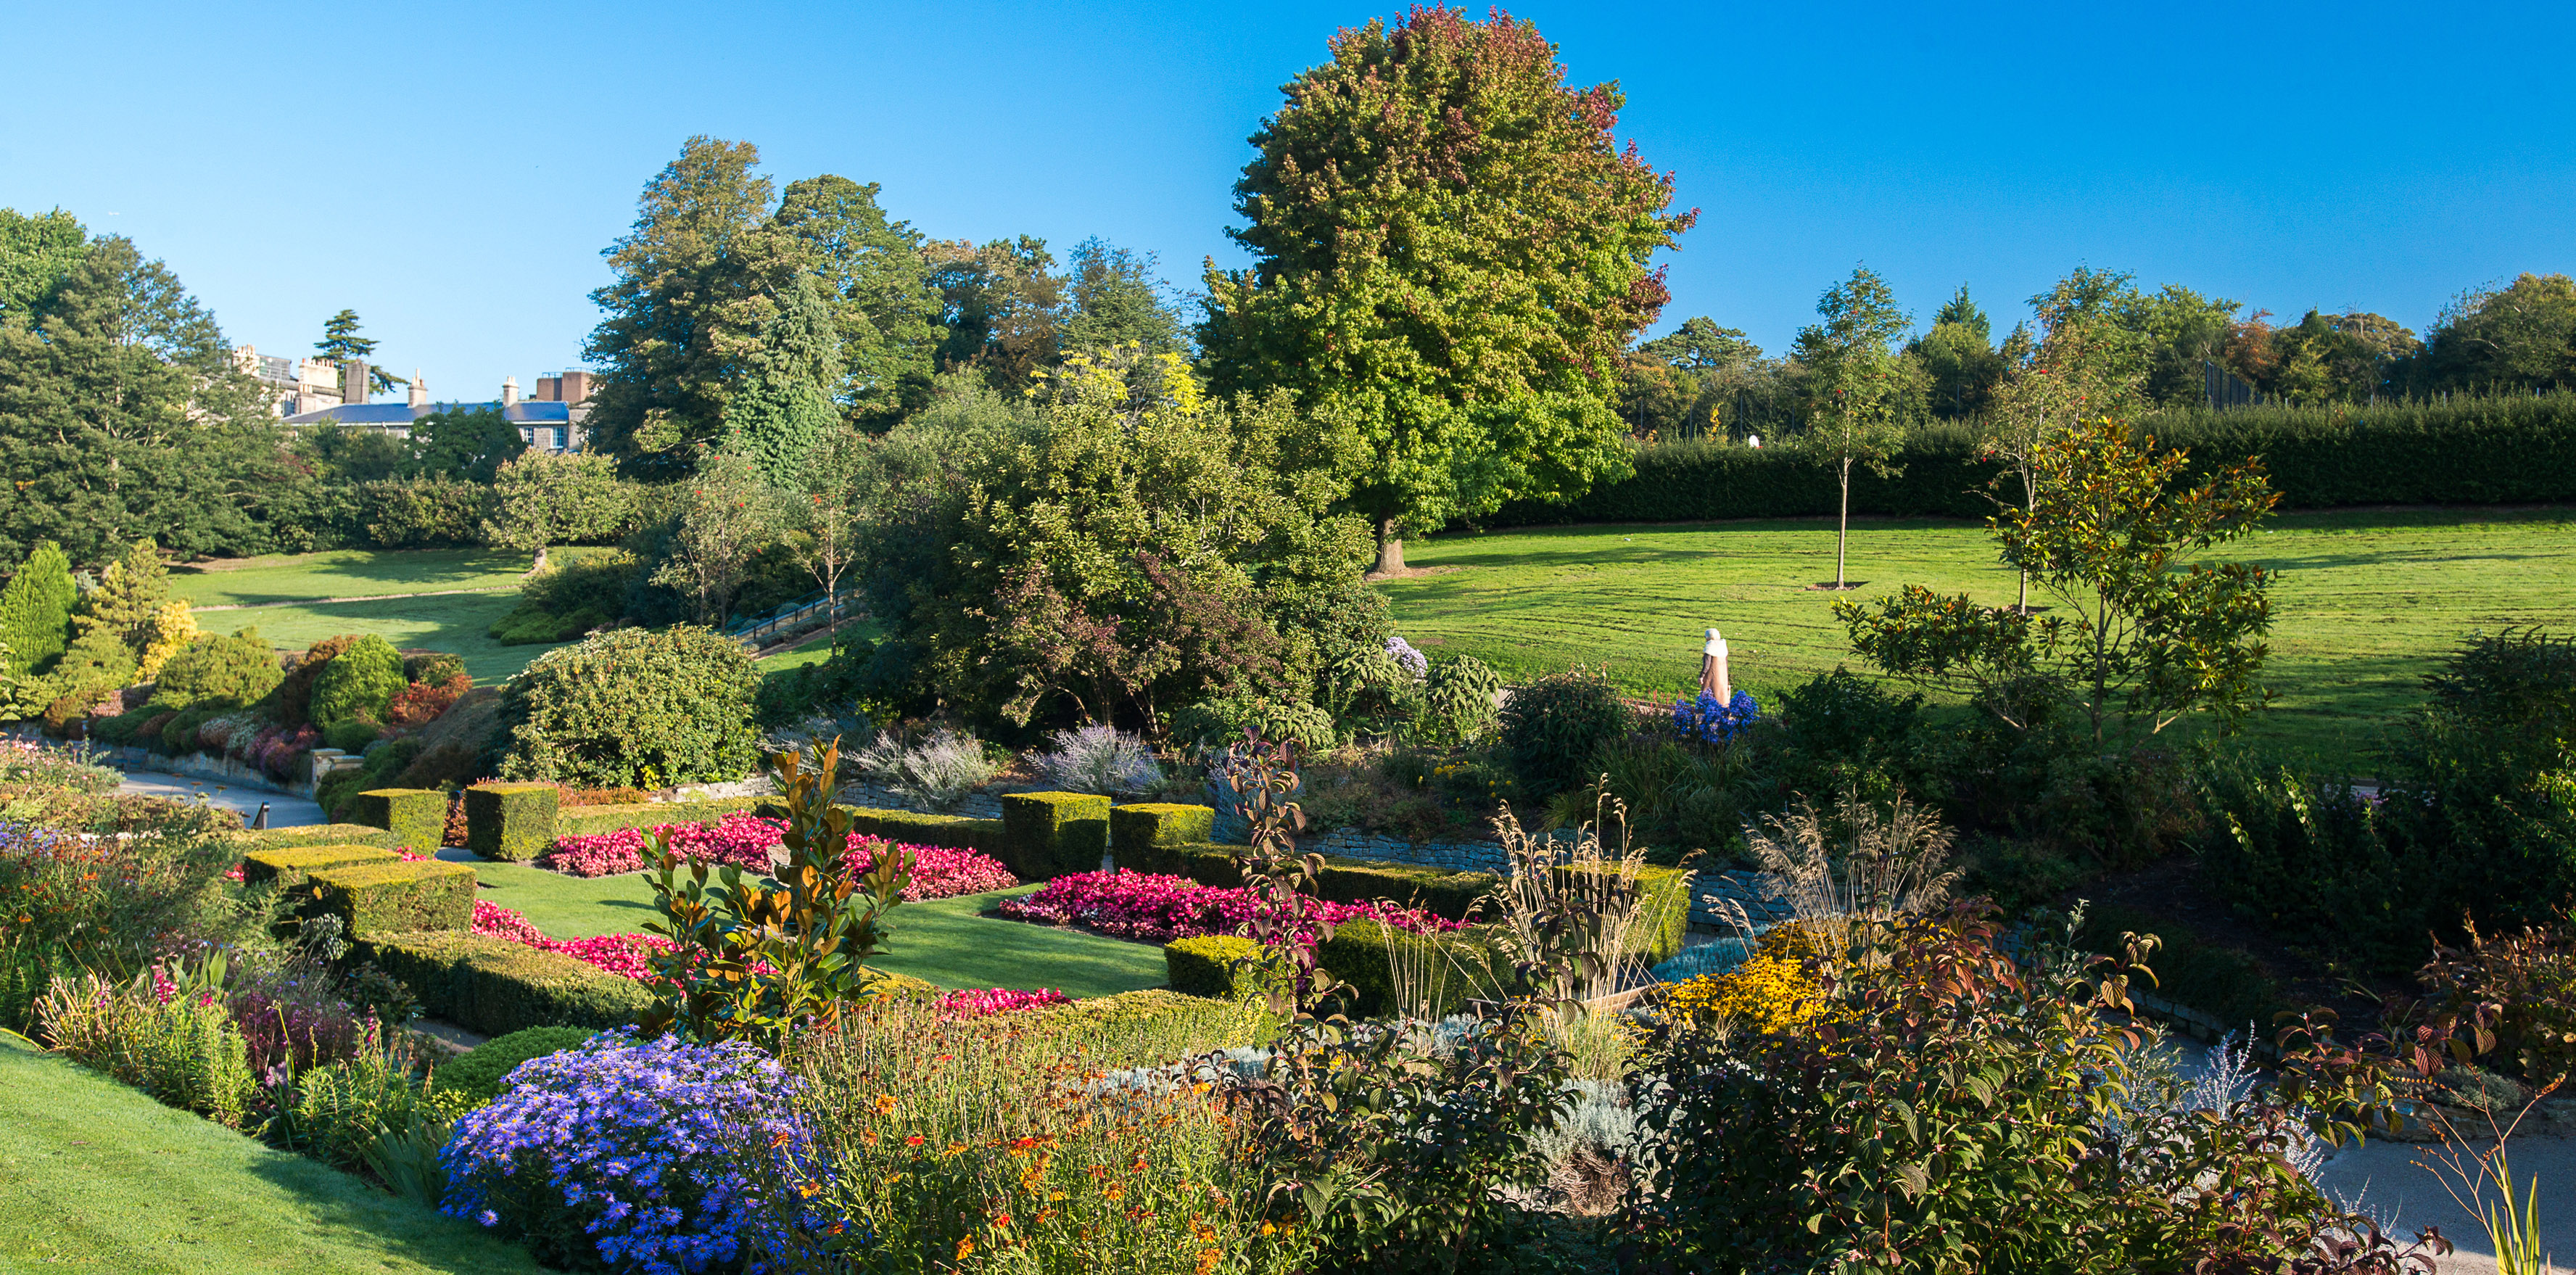 Calverley Grounds in the Summer